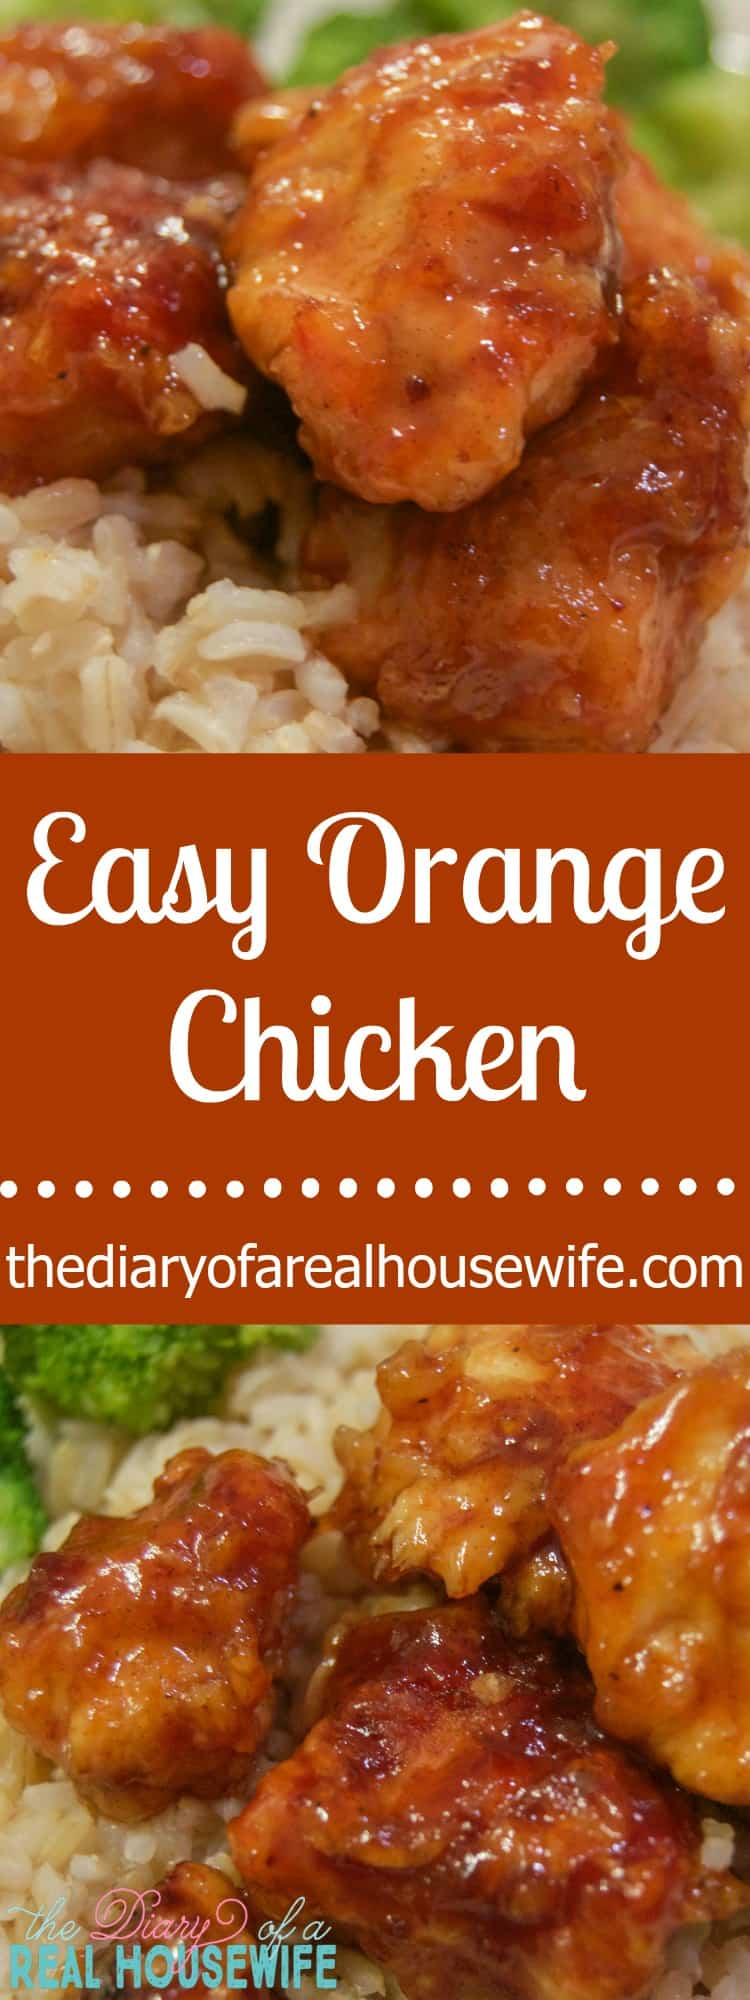 Easy Orange Chicken. Just as good as take out and this was so EASY to make!